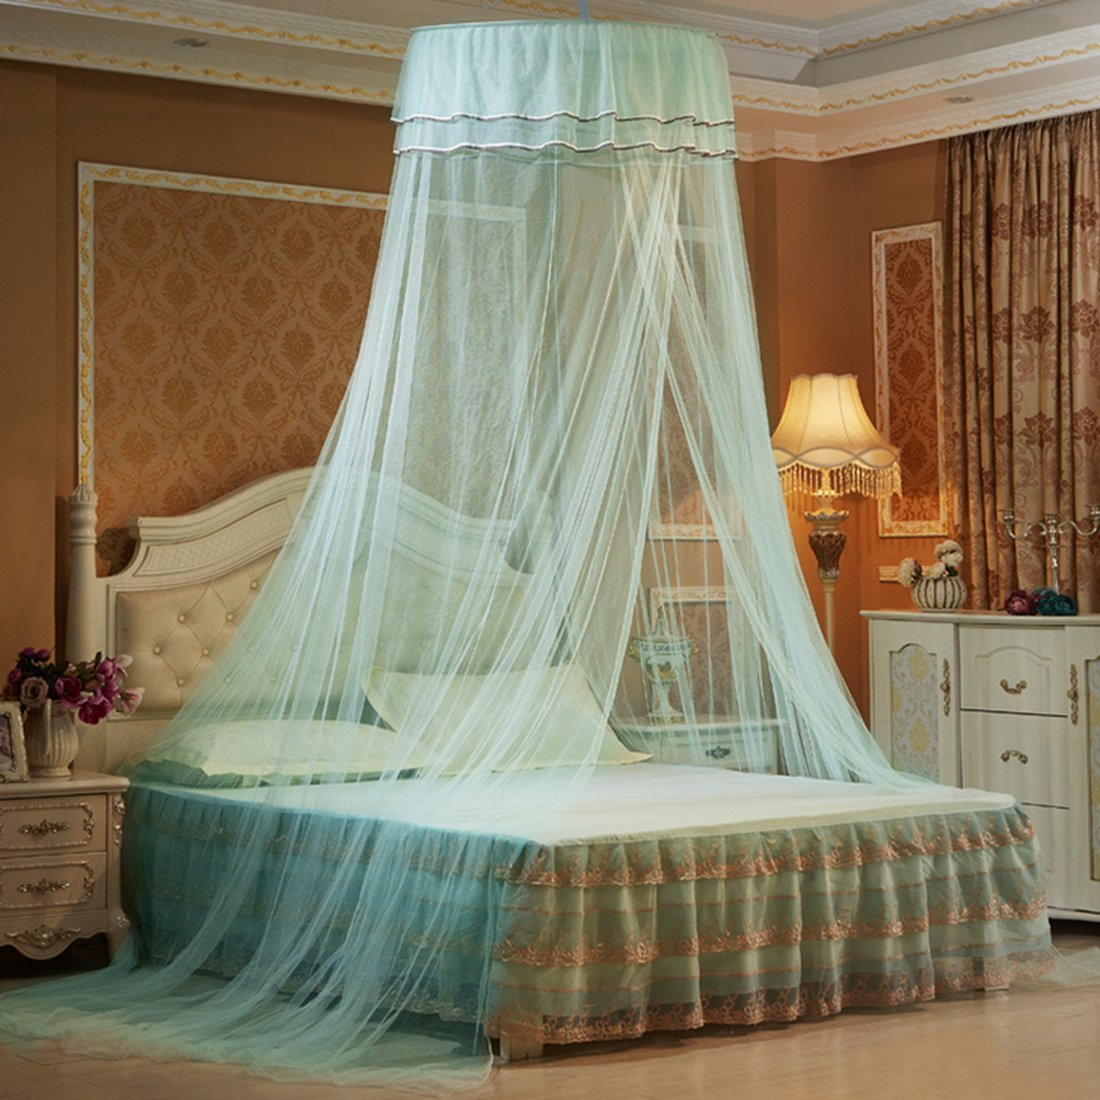 Mosquito Net Dome, Petforu Princess Bed Canopies Netting Elegant Lace with 2 Butterflies for decor - Water Blue